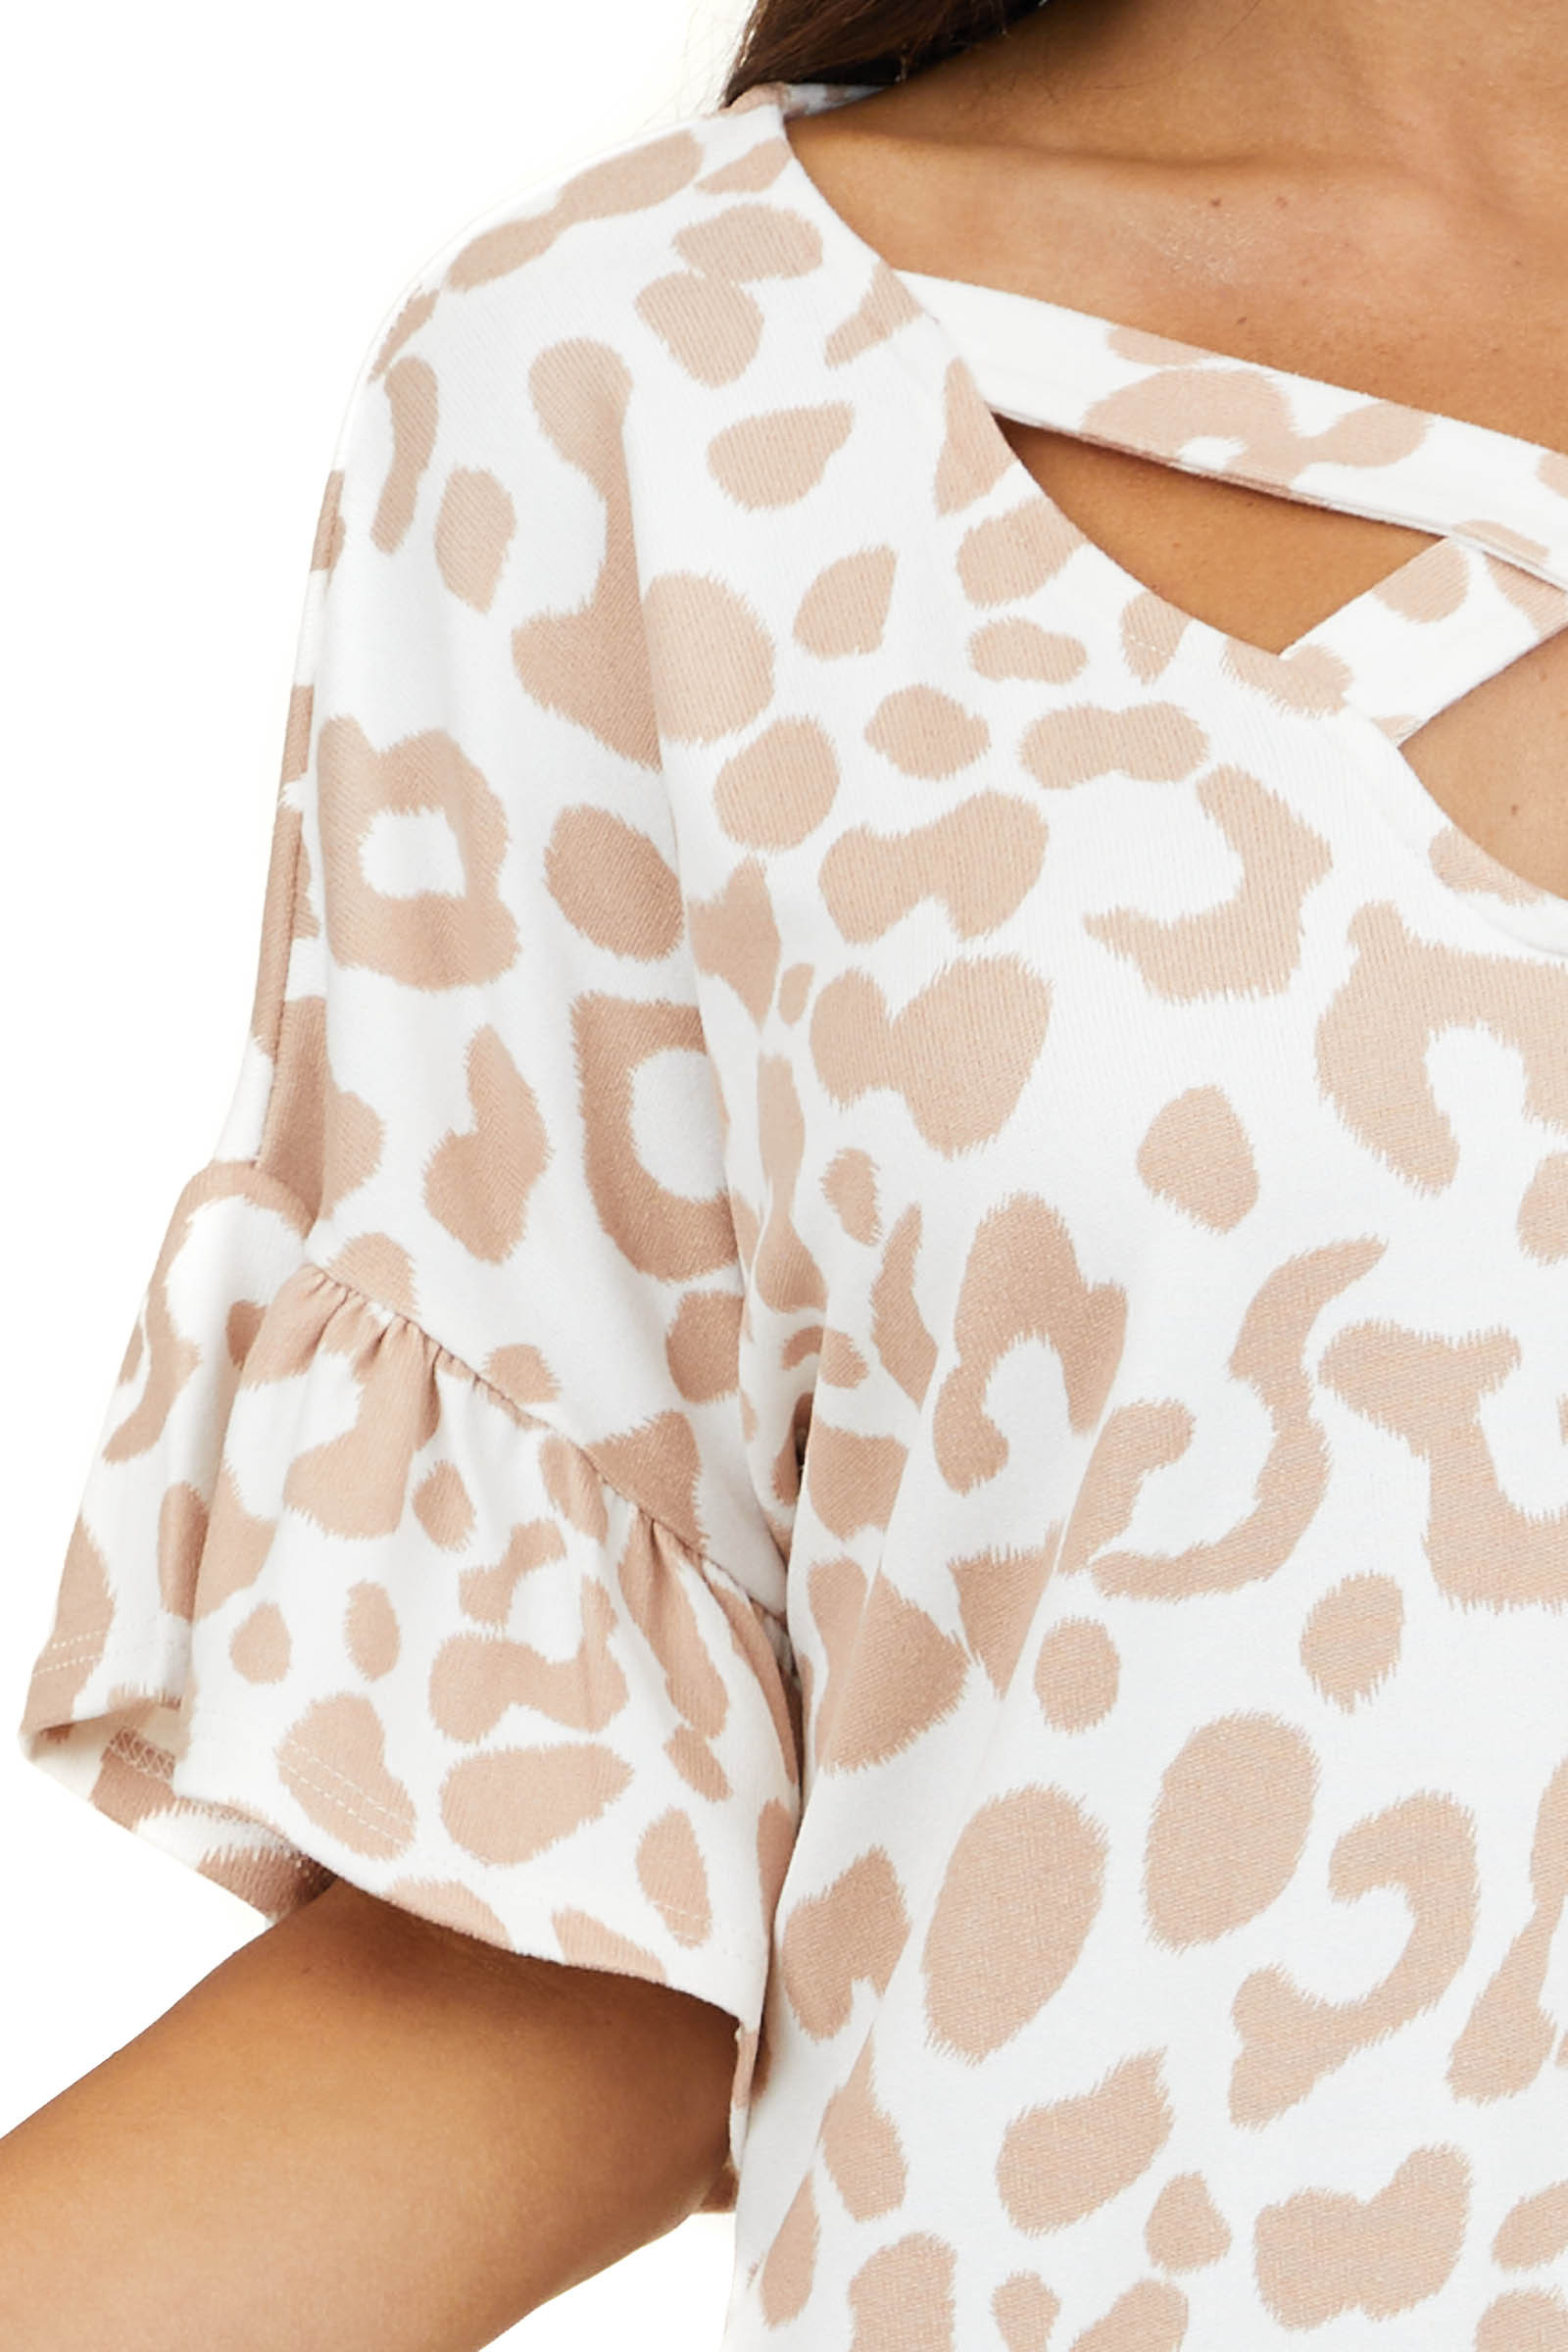 Ivory Leopard Super Soft Top with Front Criss Cross Detail